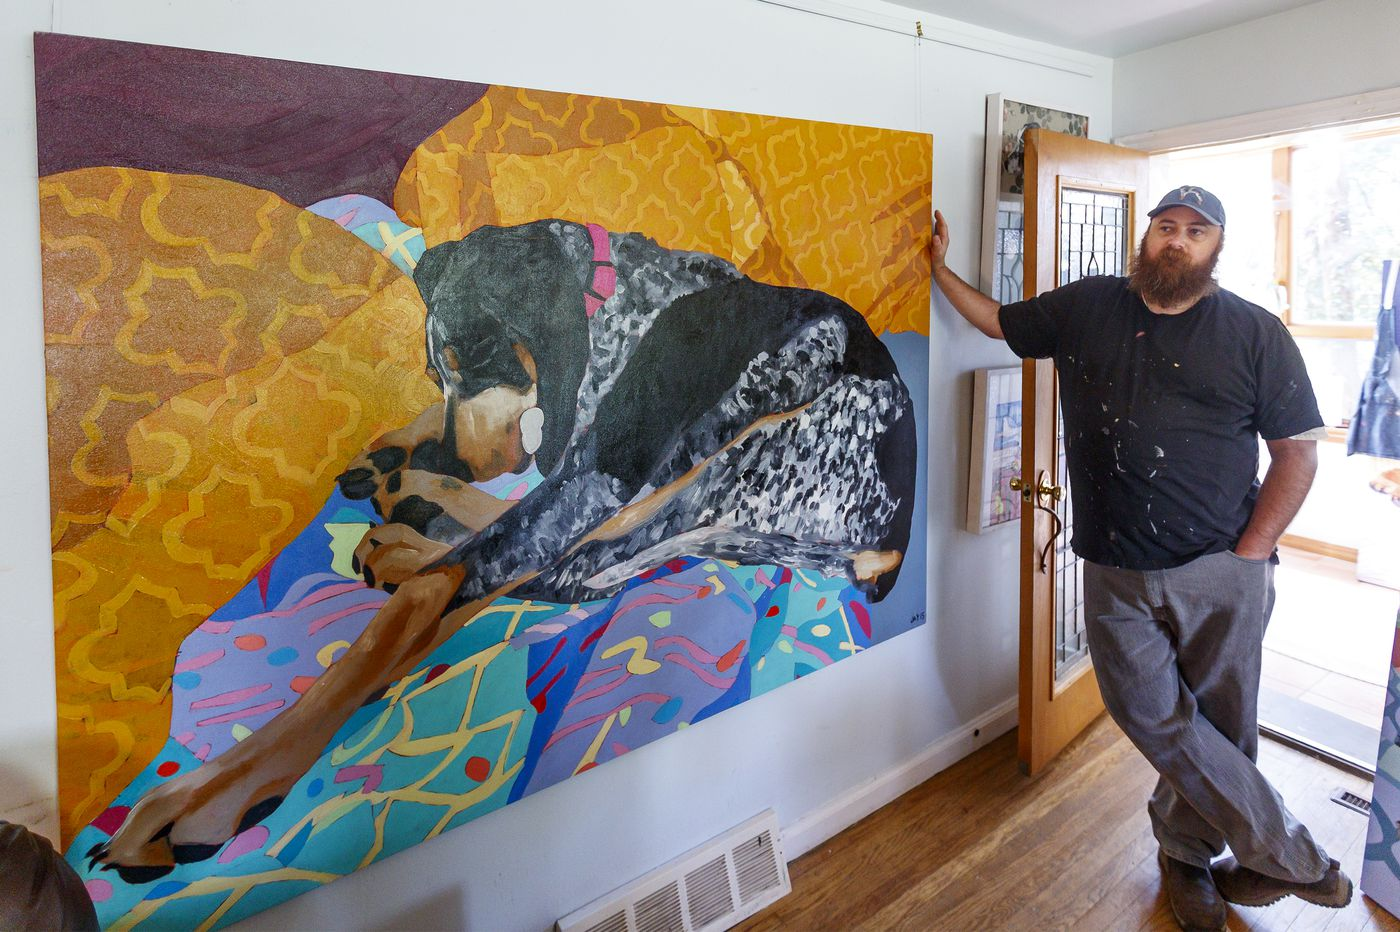 From Anthropologie to White Dog Café, his dog portraits are all over Philly | We The People